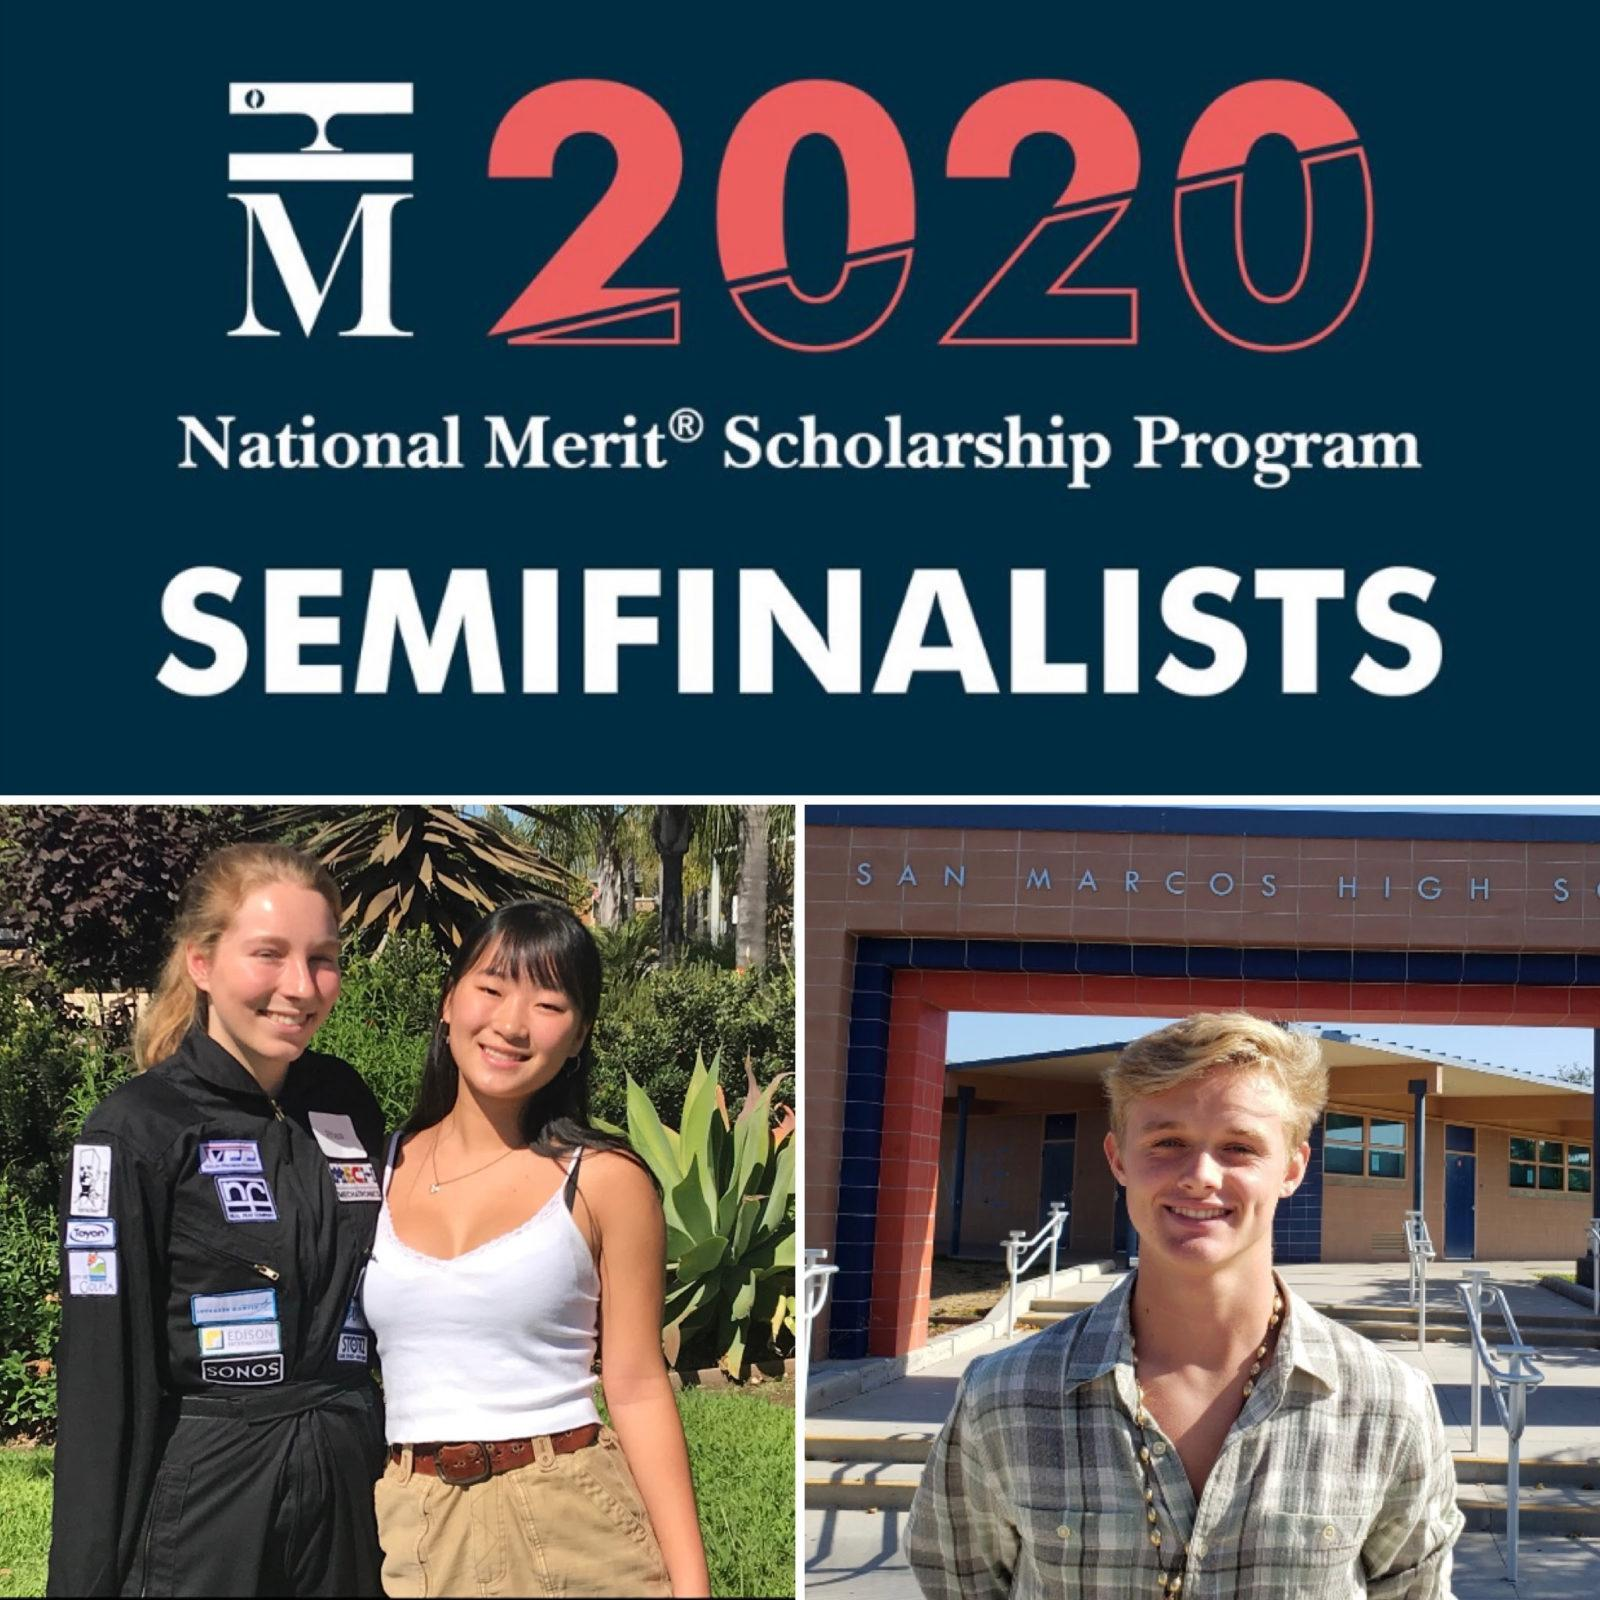 Congratulations to our National Merit Scholar Semifinalists